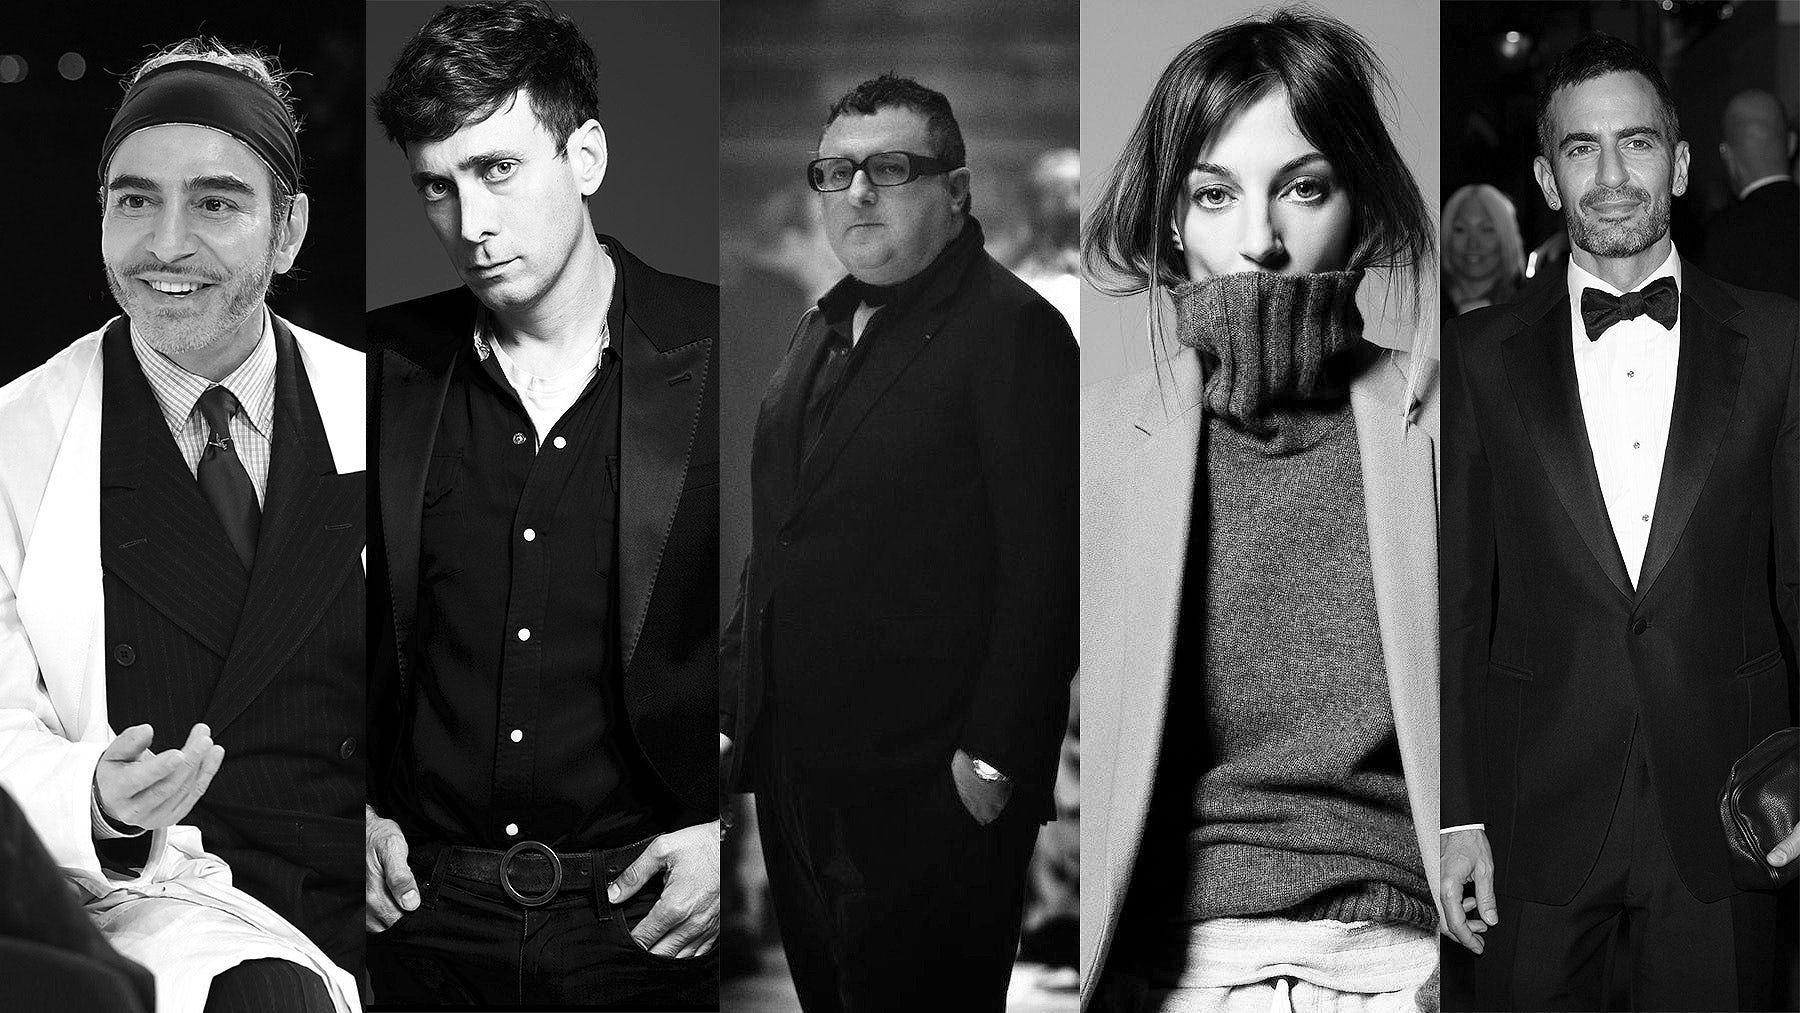 From left: John Galliano, Hedi Slimane, Alber Elbaz, Phoebe Philo and Marc Jacobs | Source: Courtesy